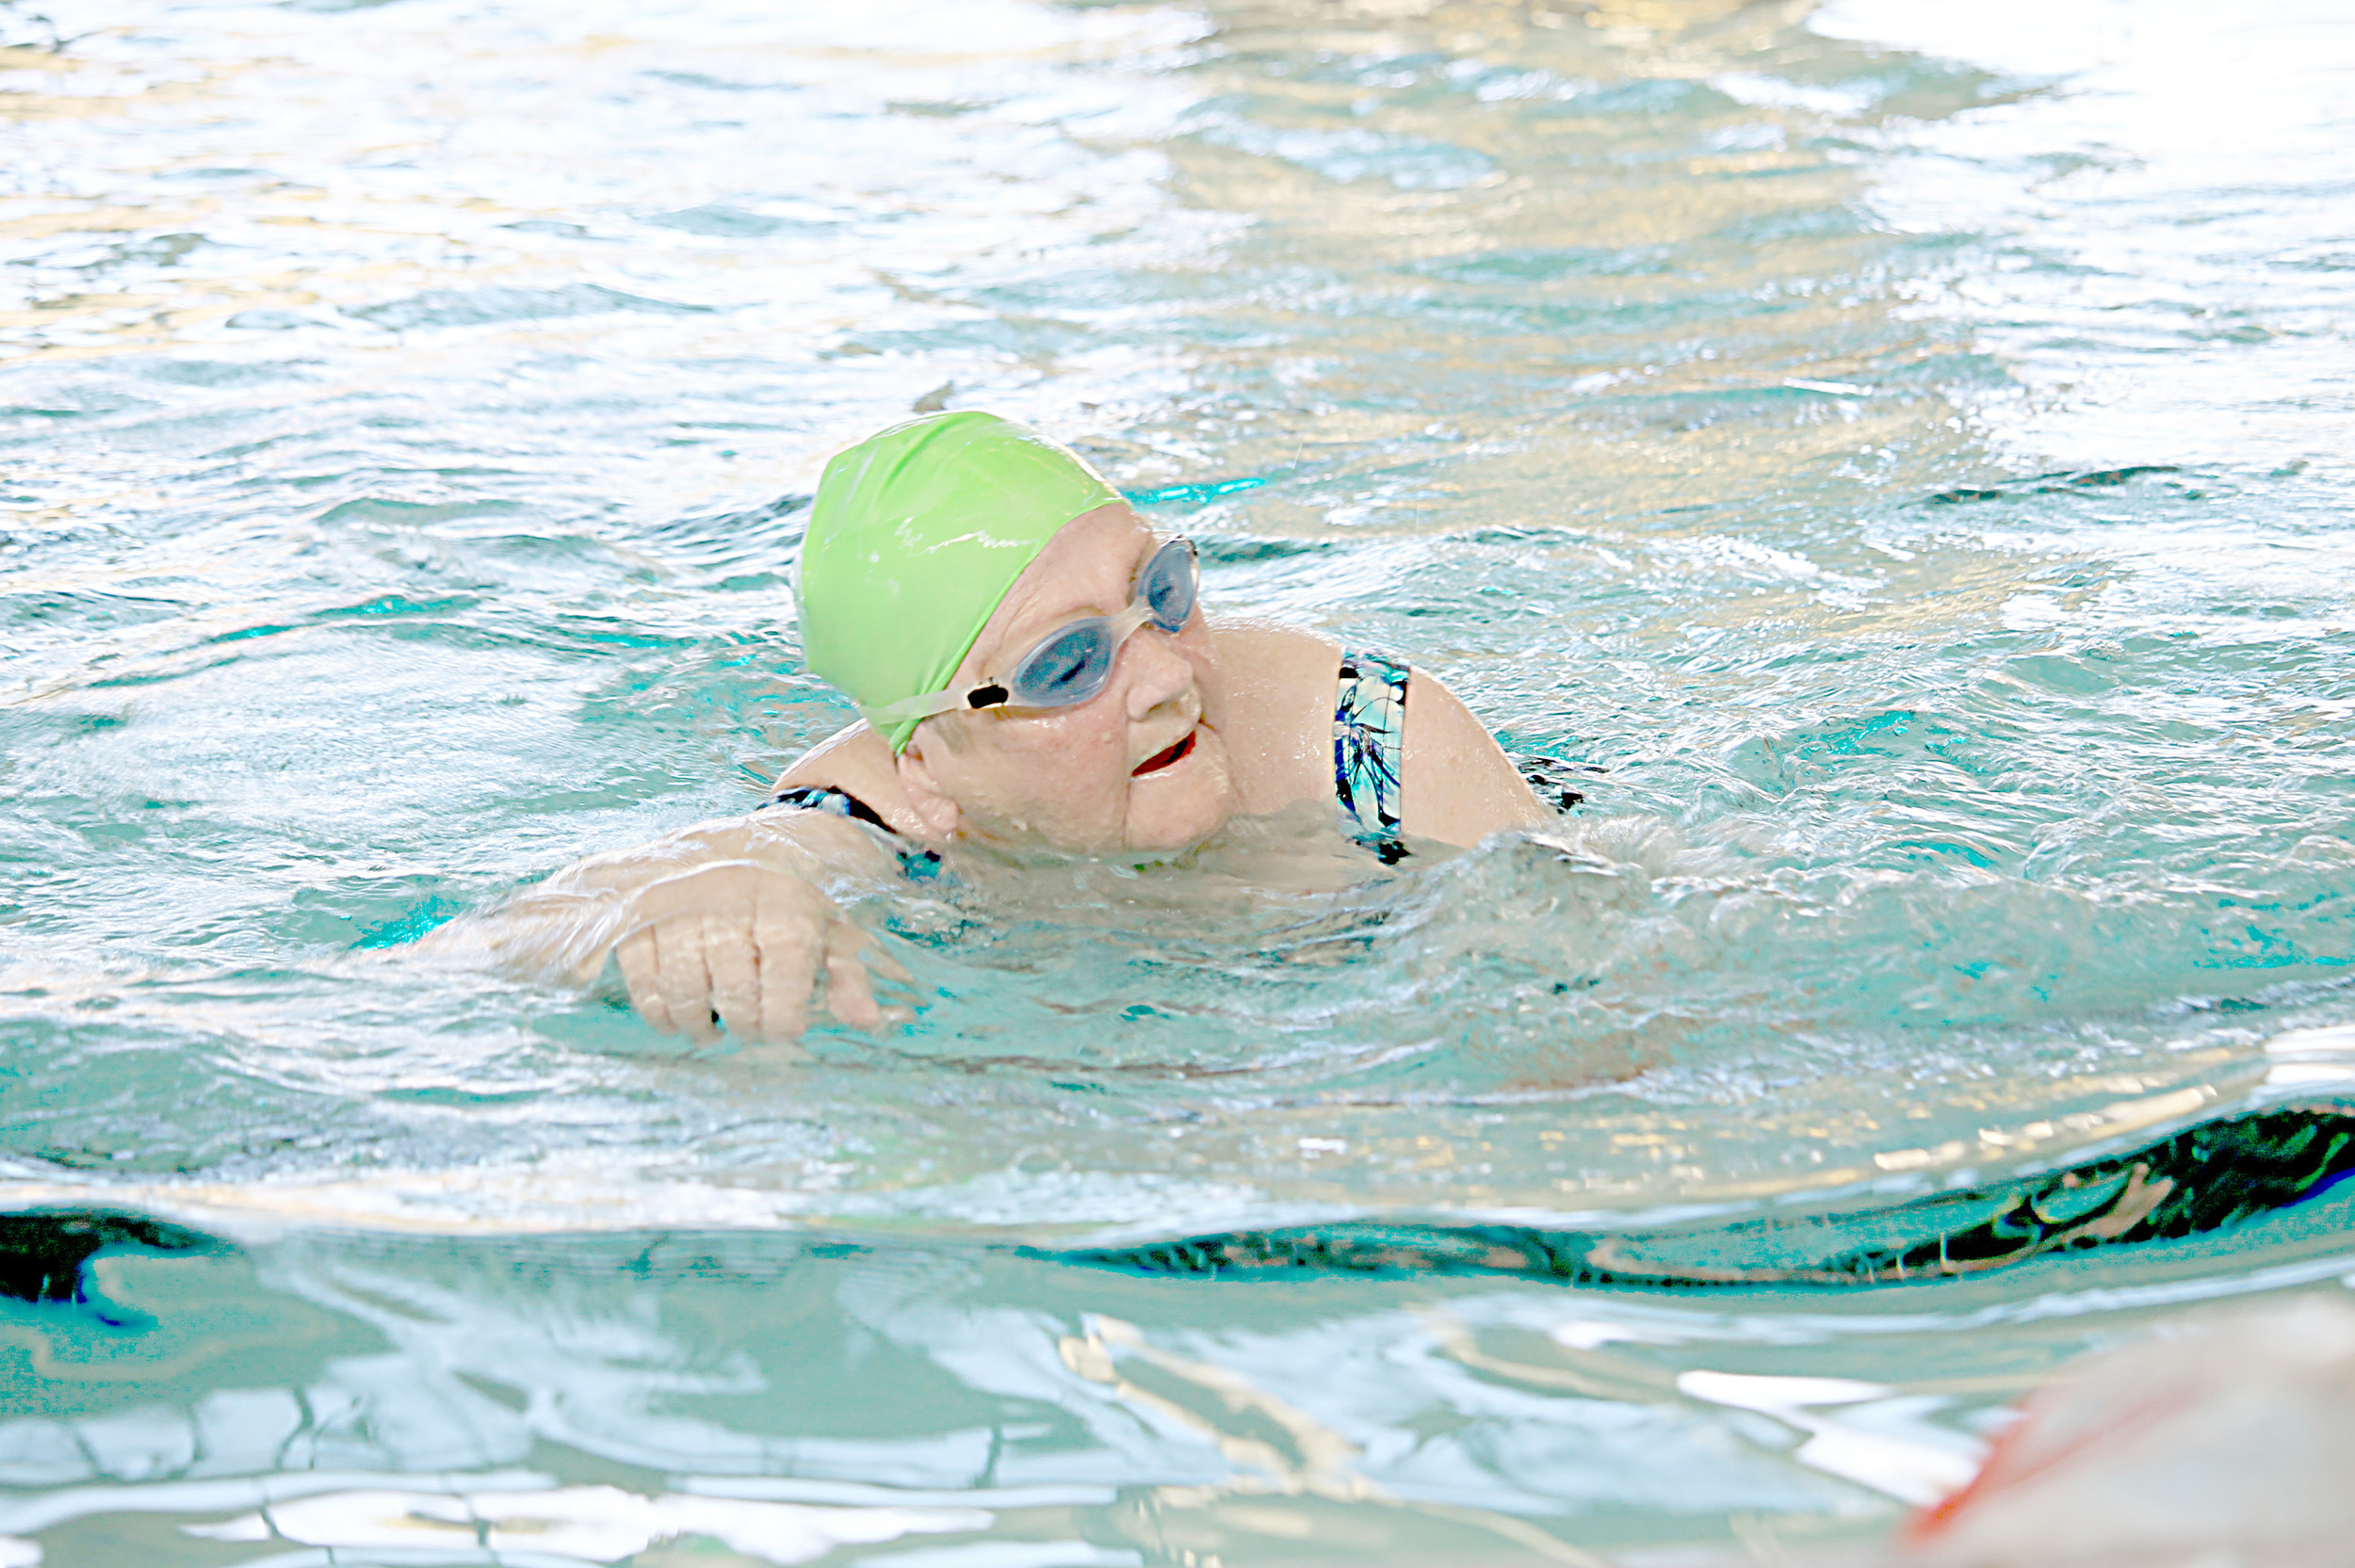 Ruth Barner swims at Memorial Park Natatorium's indoor heated pool Wednesday morning. More than 40 adults have learned to swim at the Natatorium in the past year. Daily Mountain Eagle - Jennifer Cohron